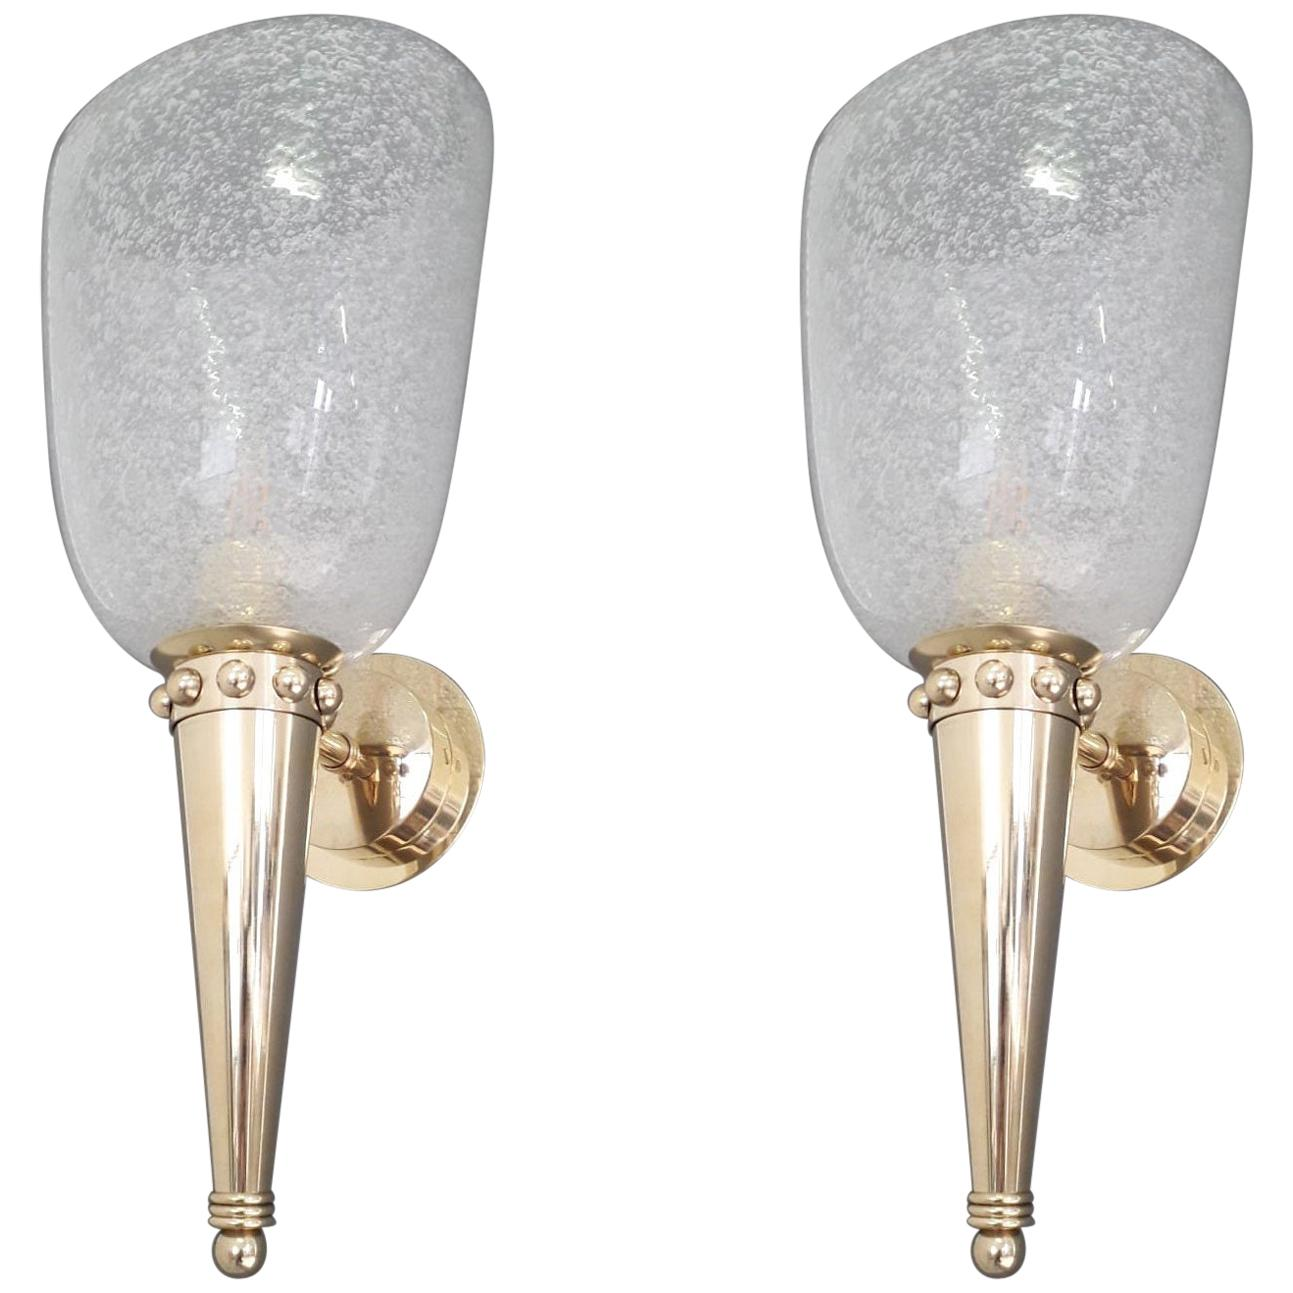 Pair of Torch Sconces by Barovier et Toso